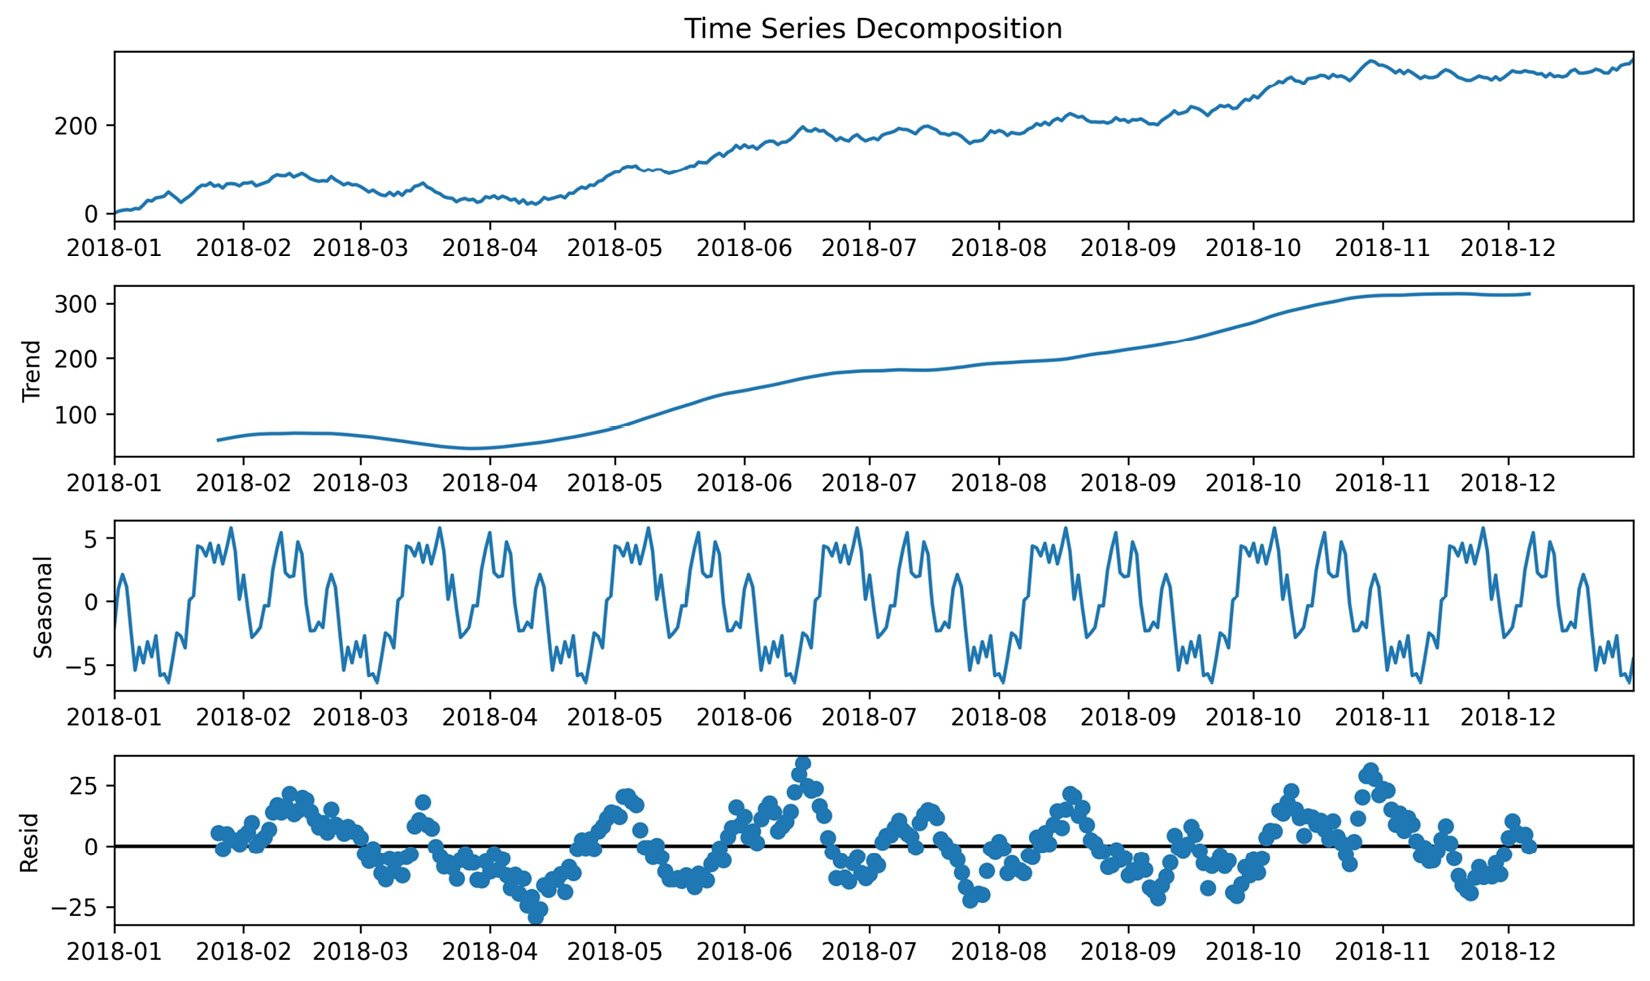 Figure 1.17 – An example of time series decomposition